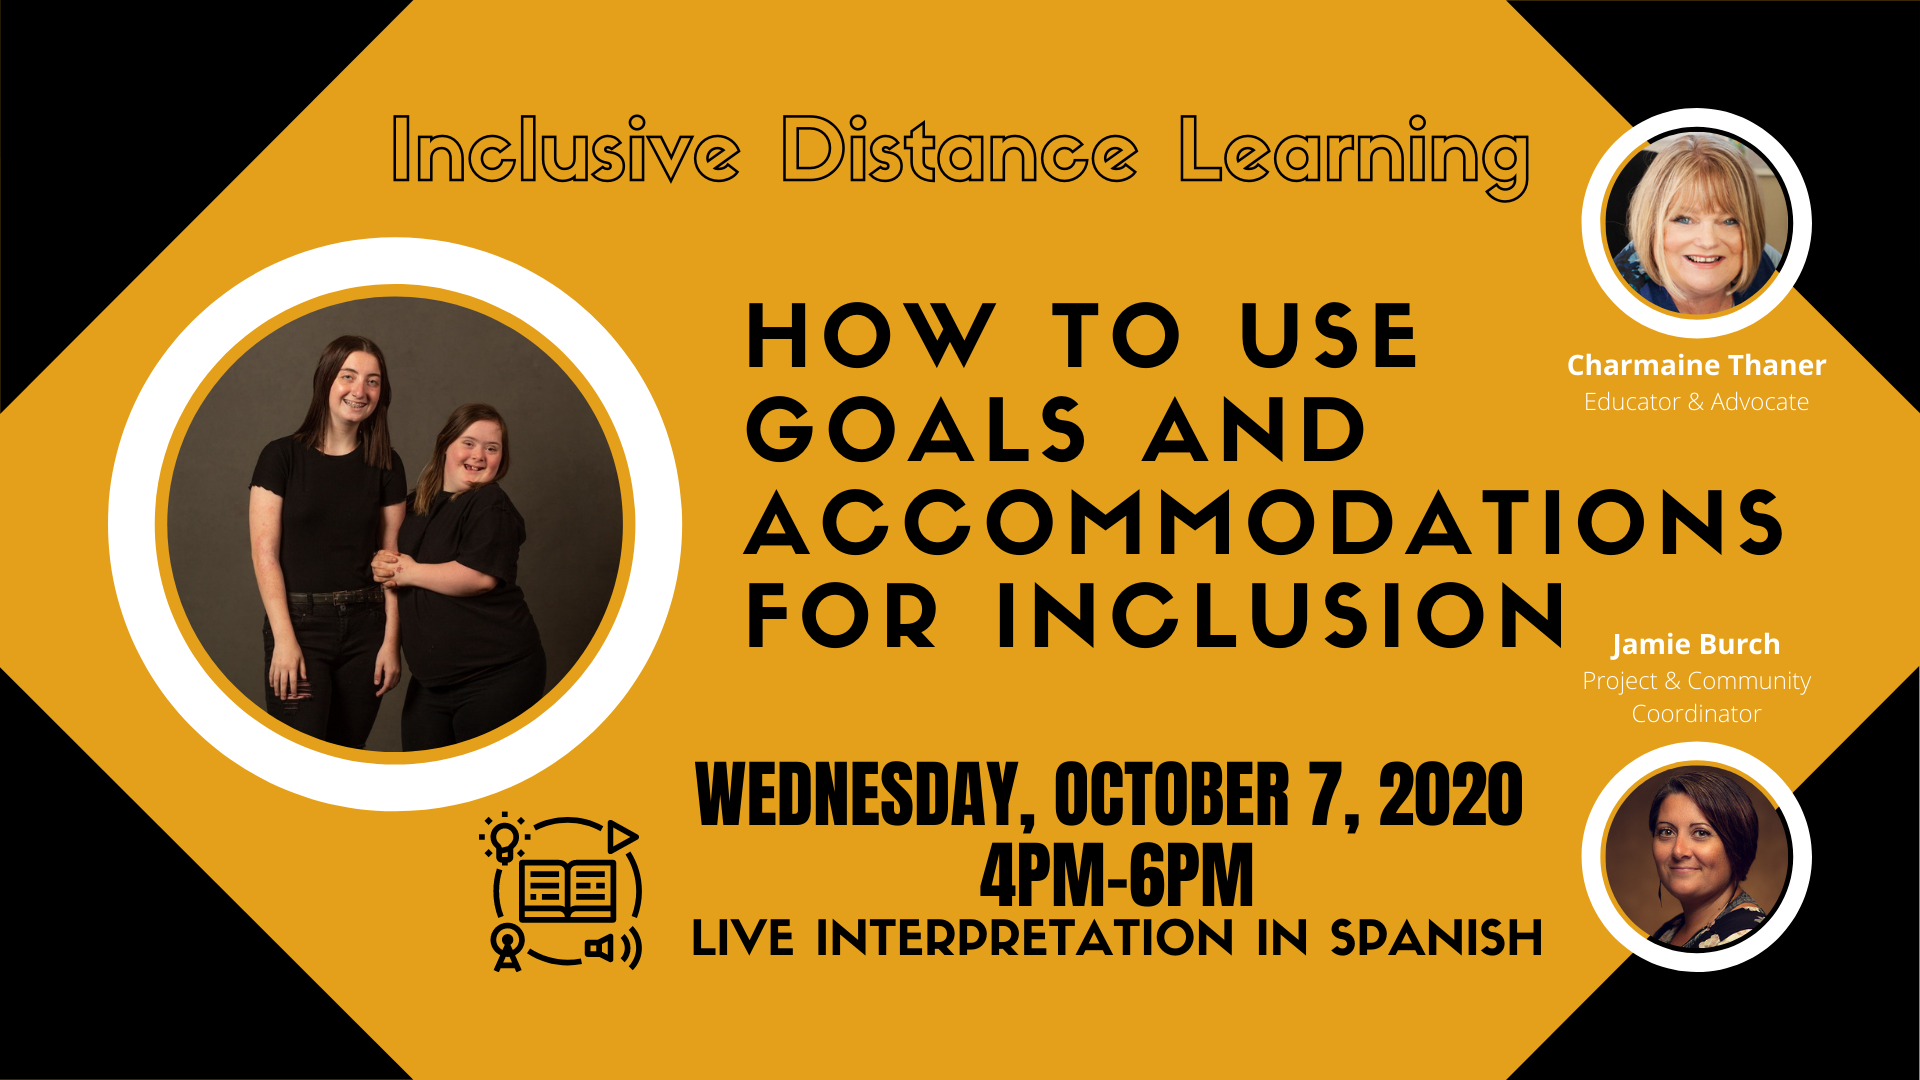 Inclusive Distance Learning; How to Use Goals and Accommodations for Inclusion